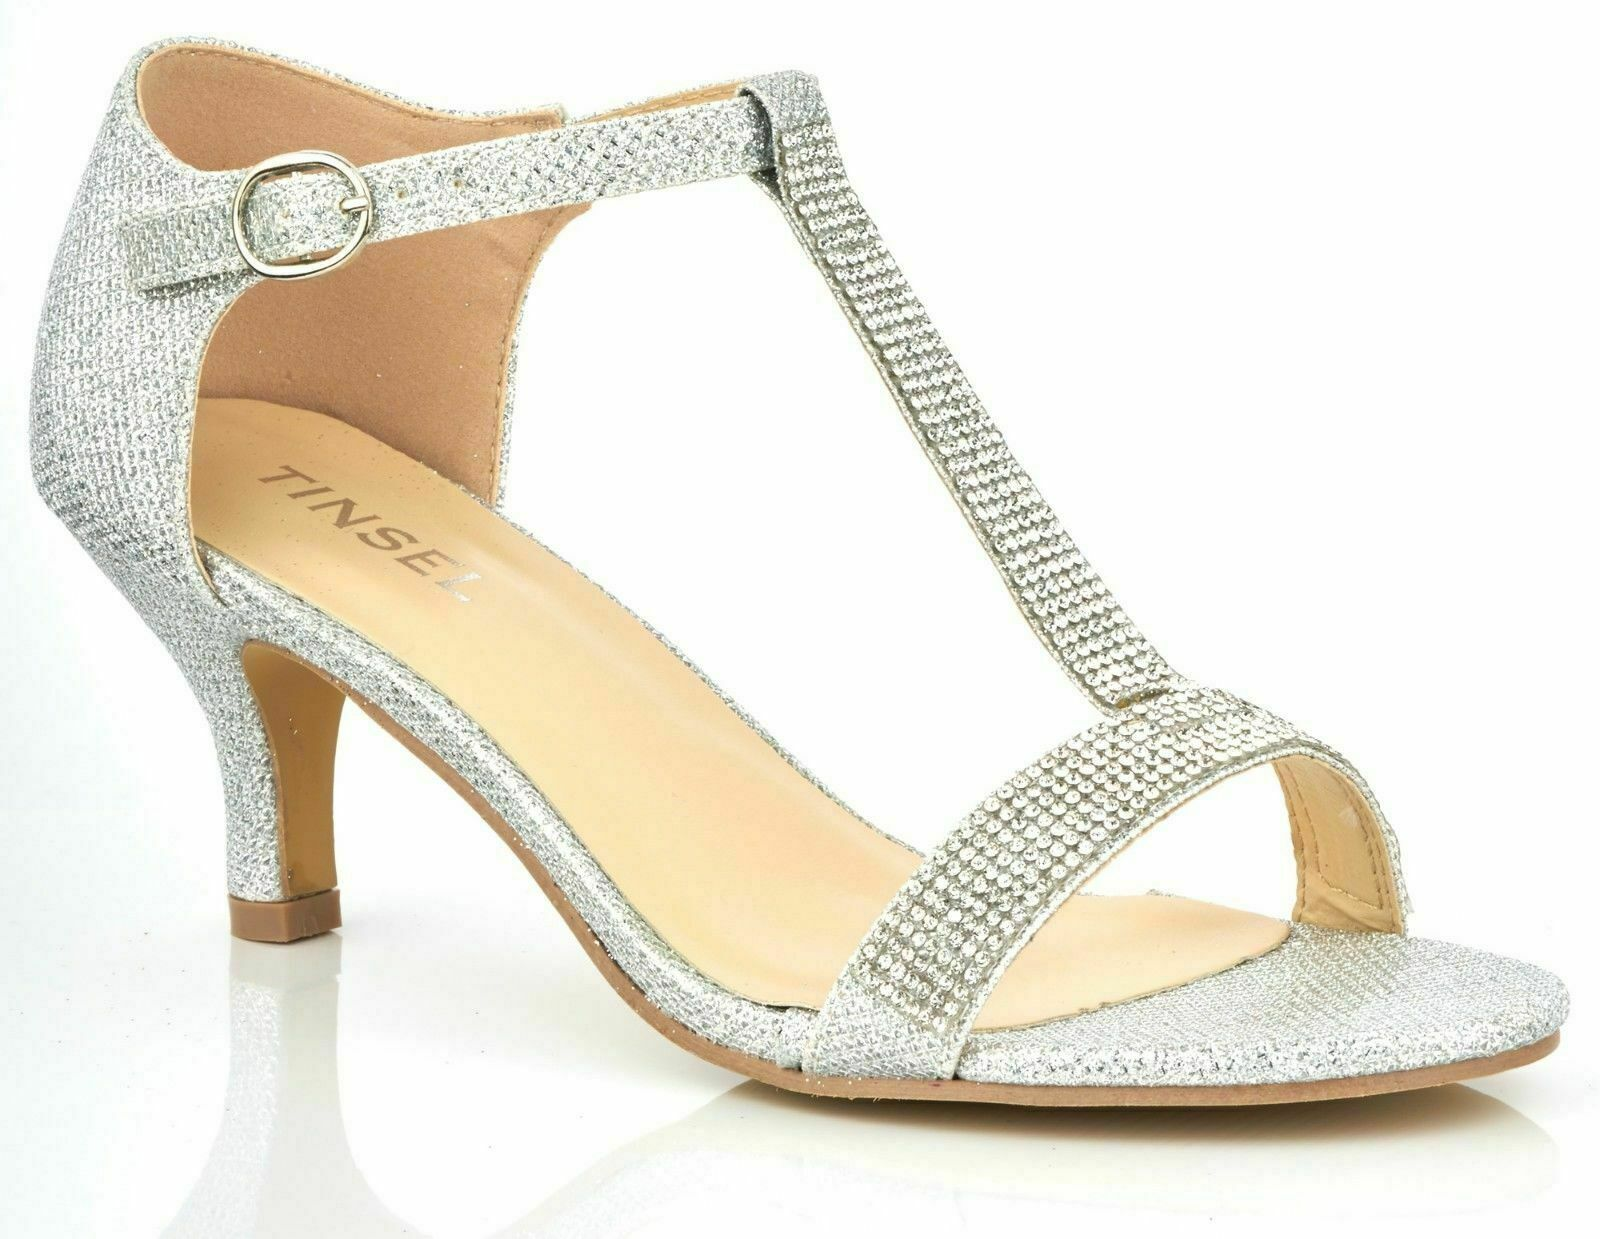 WOMENS SILVER DIAMANTE DETAIL LOW HEEL PEEP TOE STRAPPY T-BAR SHOES SANDALS 3-8